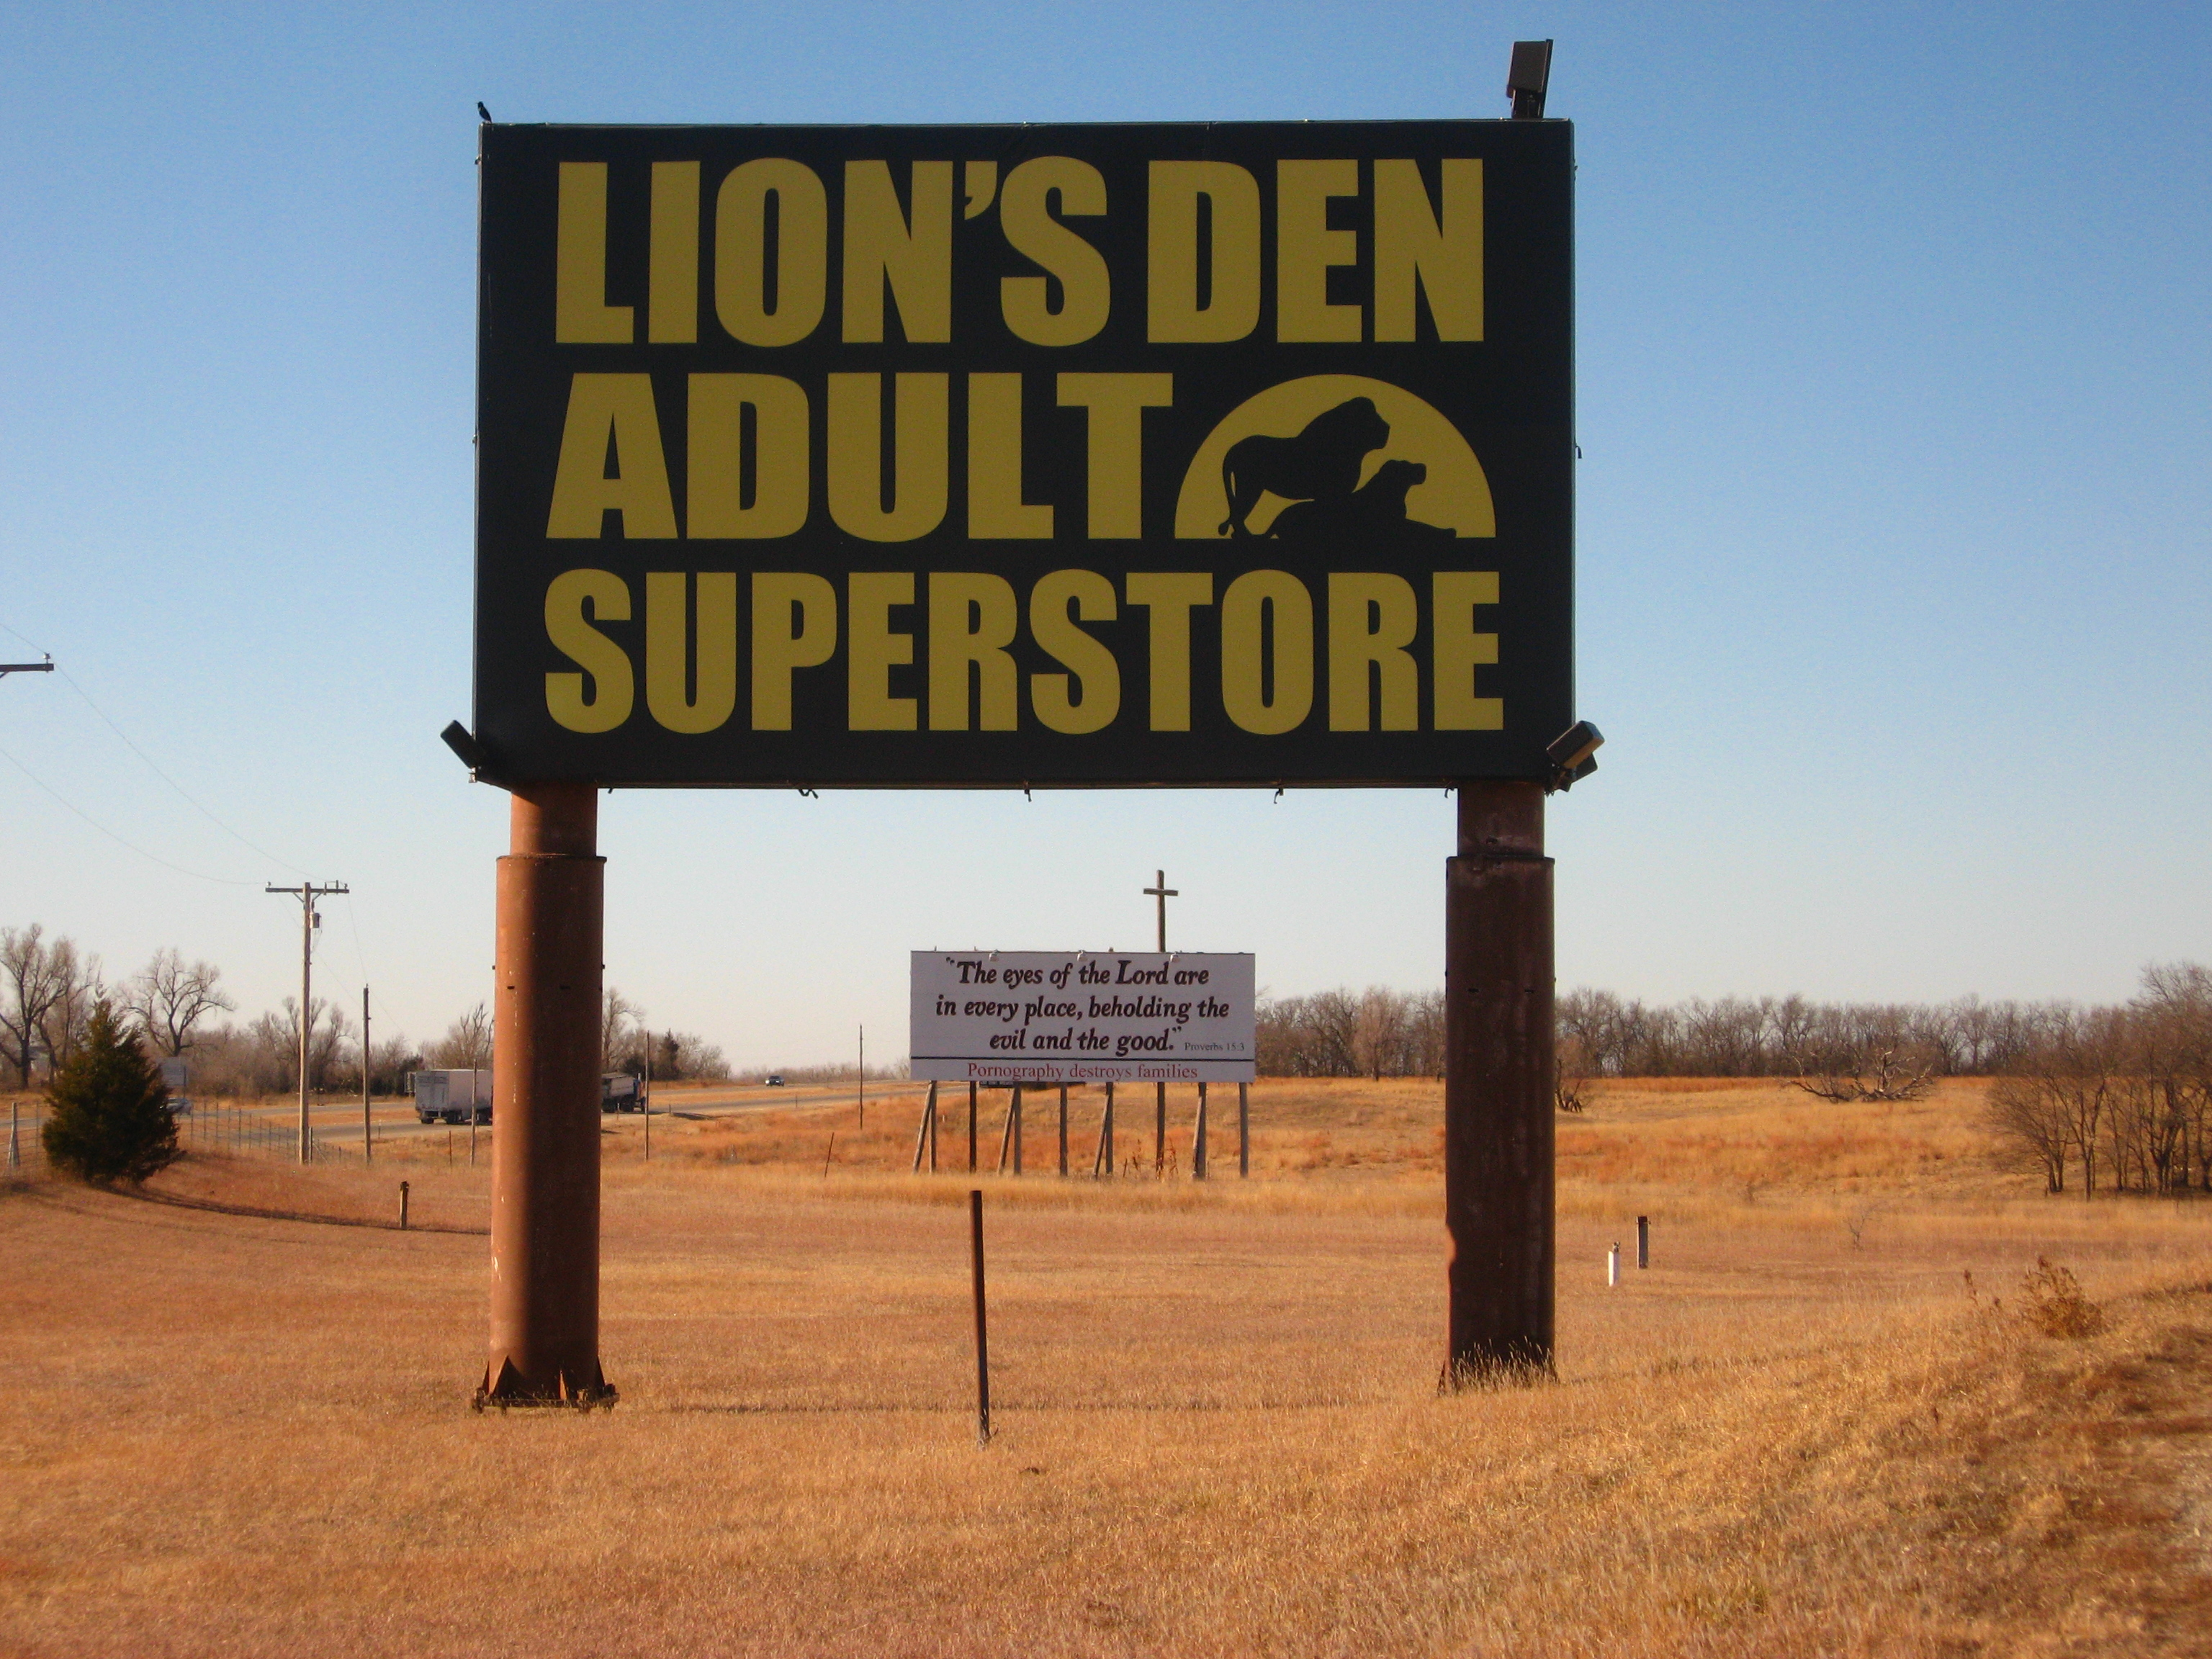 Let's Lions den adult bookstore